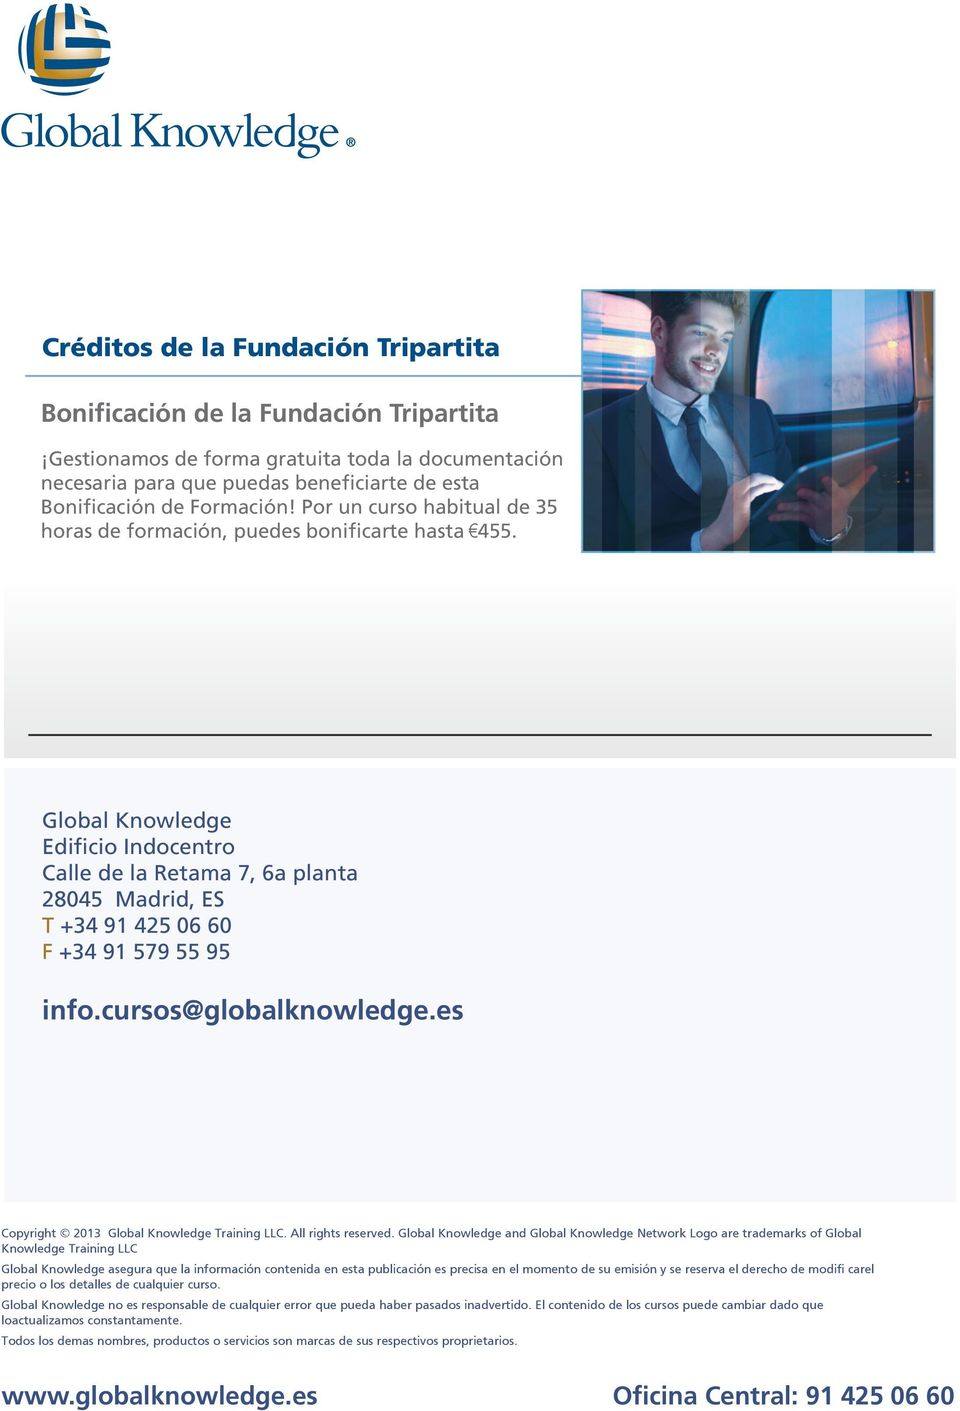 Global Knowledge Edificio Indocentro Calle de la Retama 7, 6a planta 28045 Madrid, ES T +34 91 425 06 60 F +34 91 579 55 95 info.cursos@globalknowledge.es Copyright 2013 Global Knowledge Training LLC.